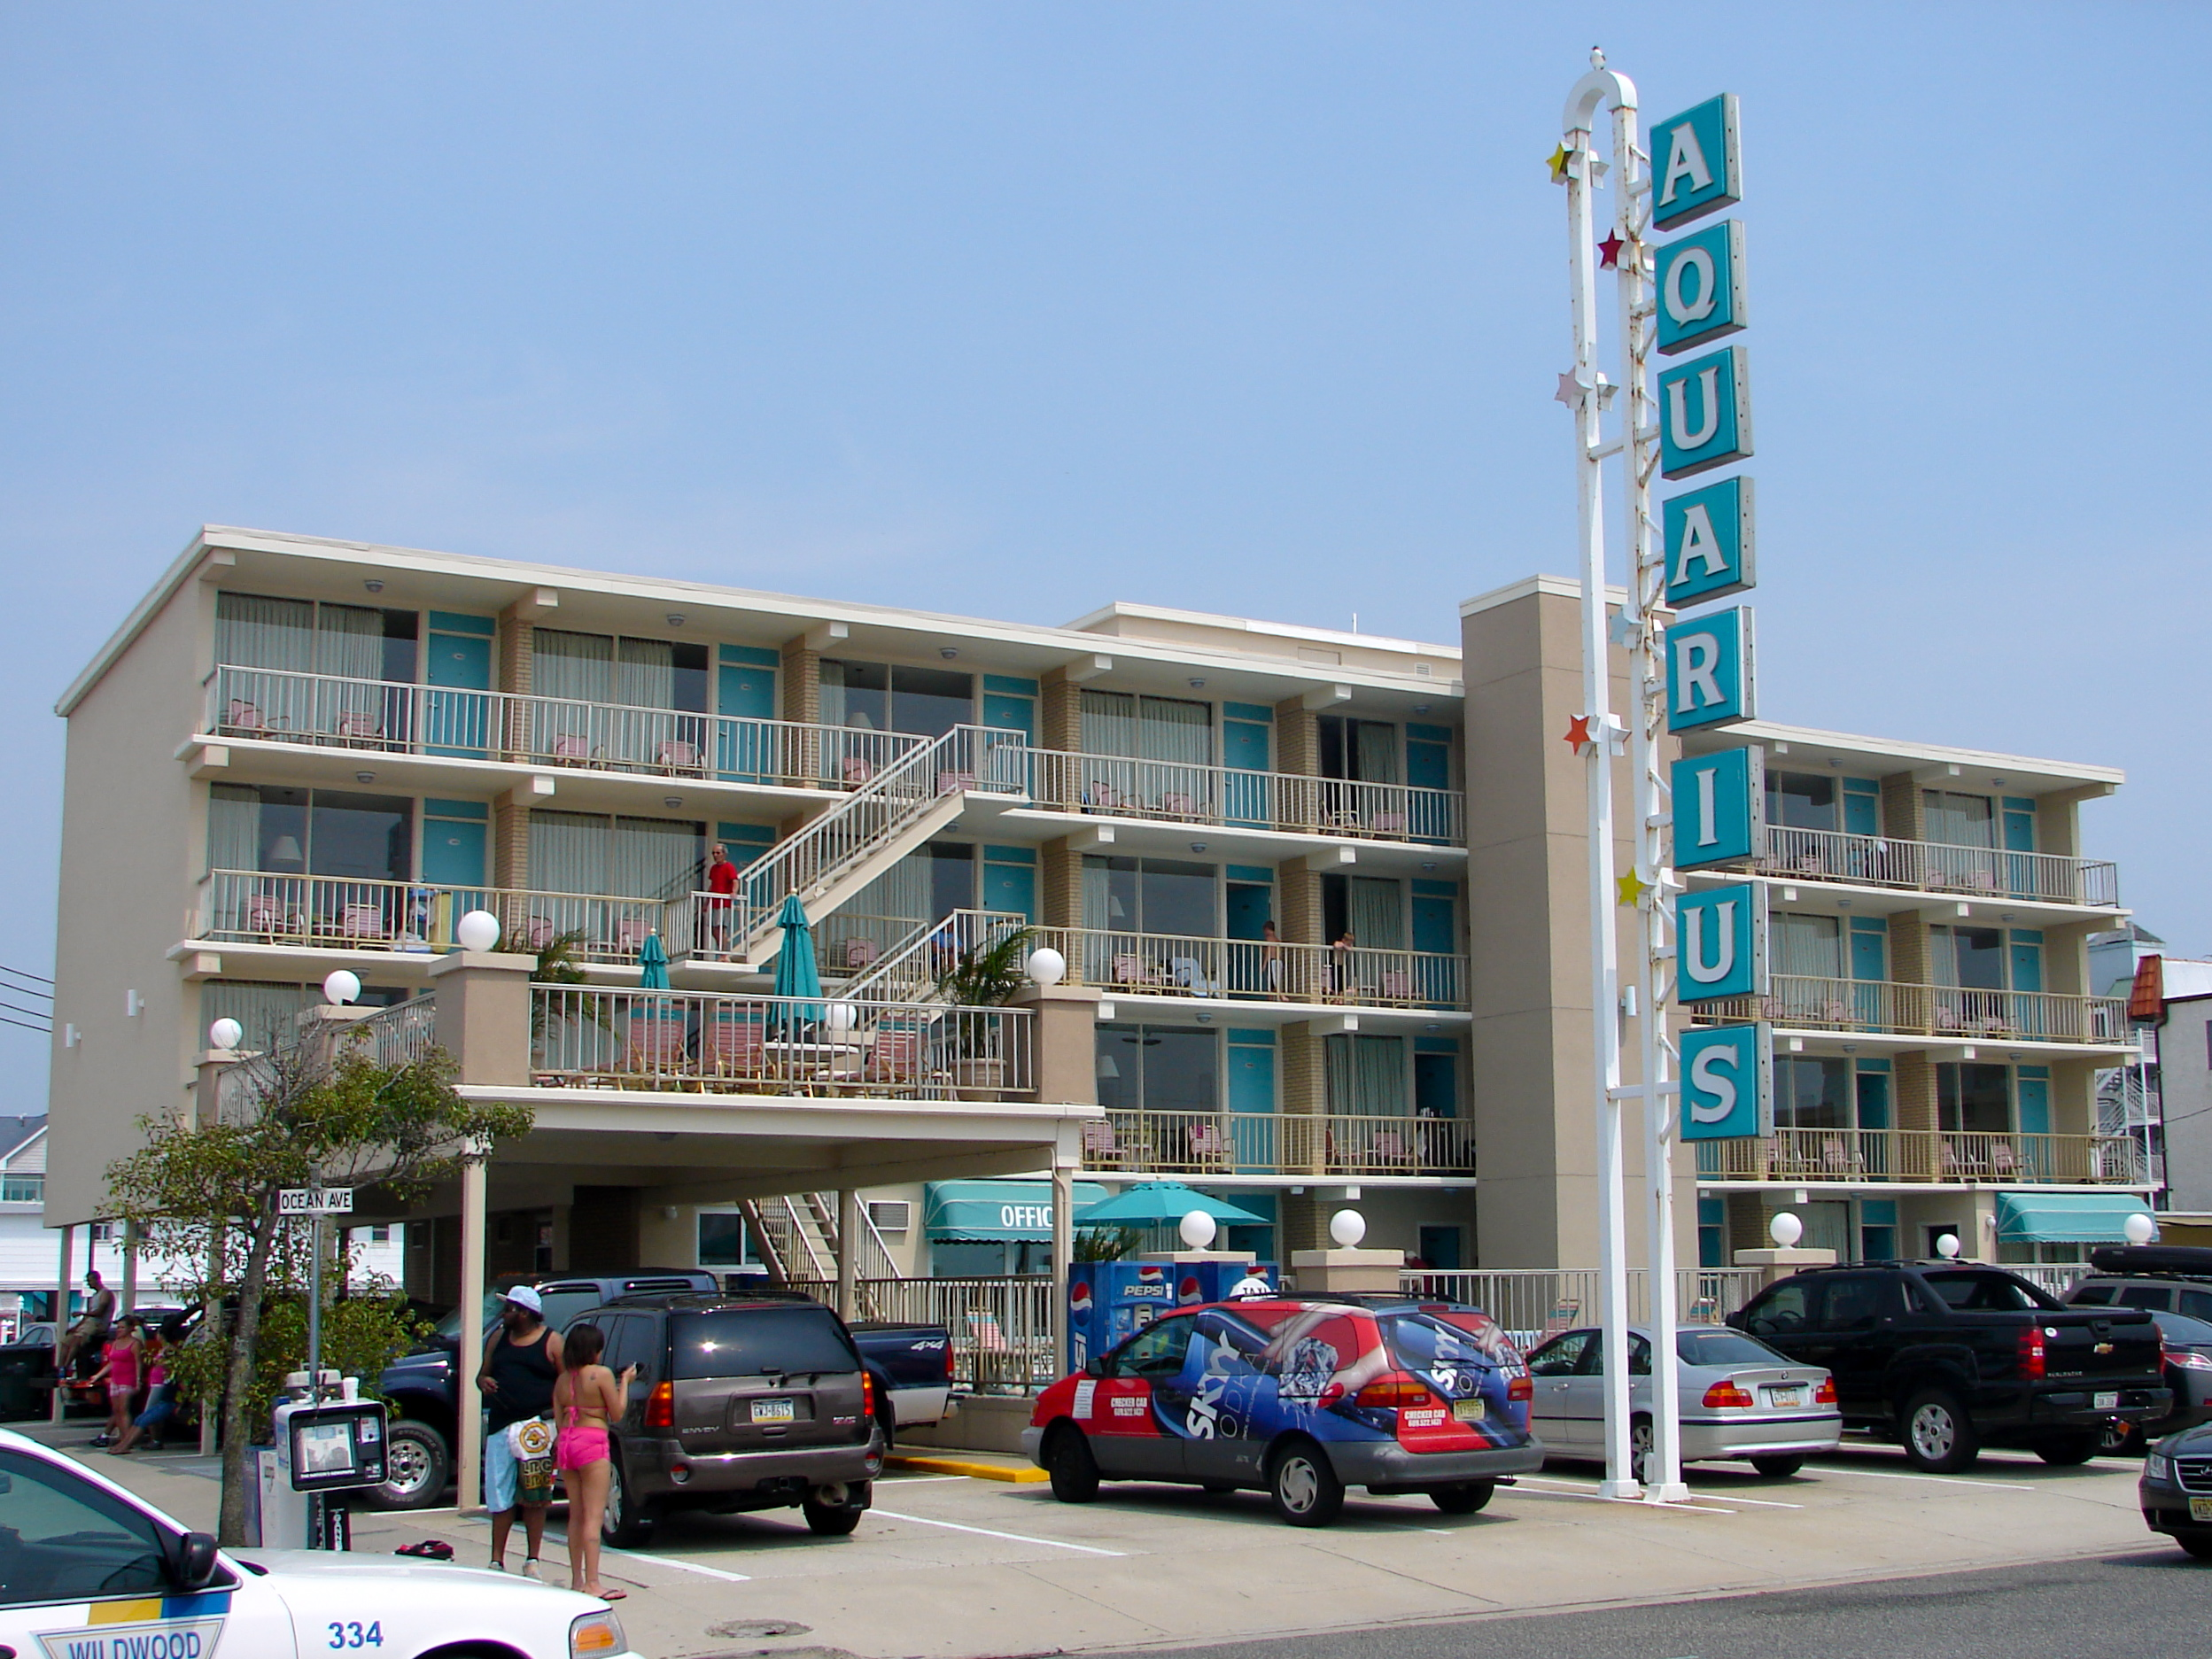 1000 images about motel exterior on pinterest for Motel exterior design